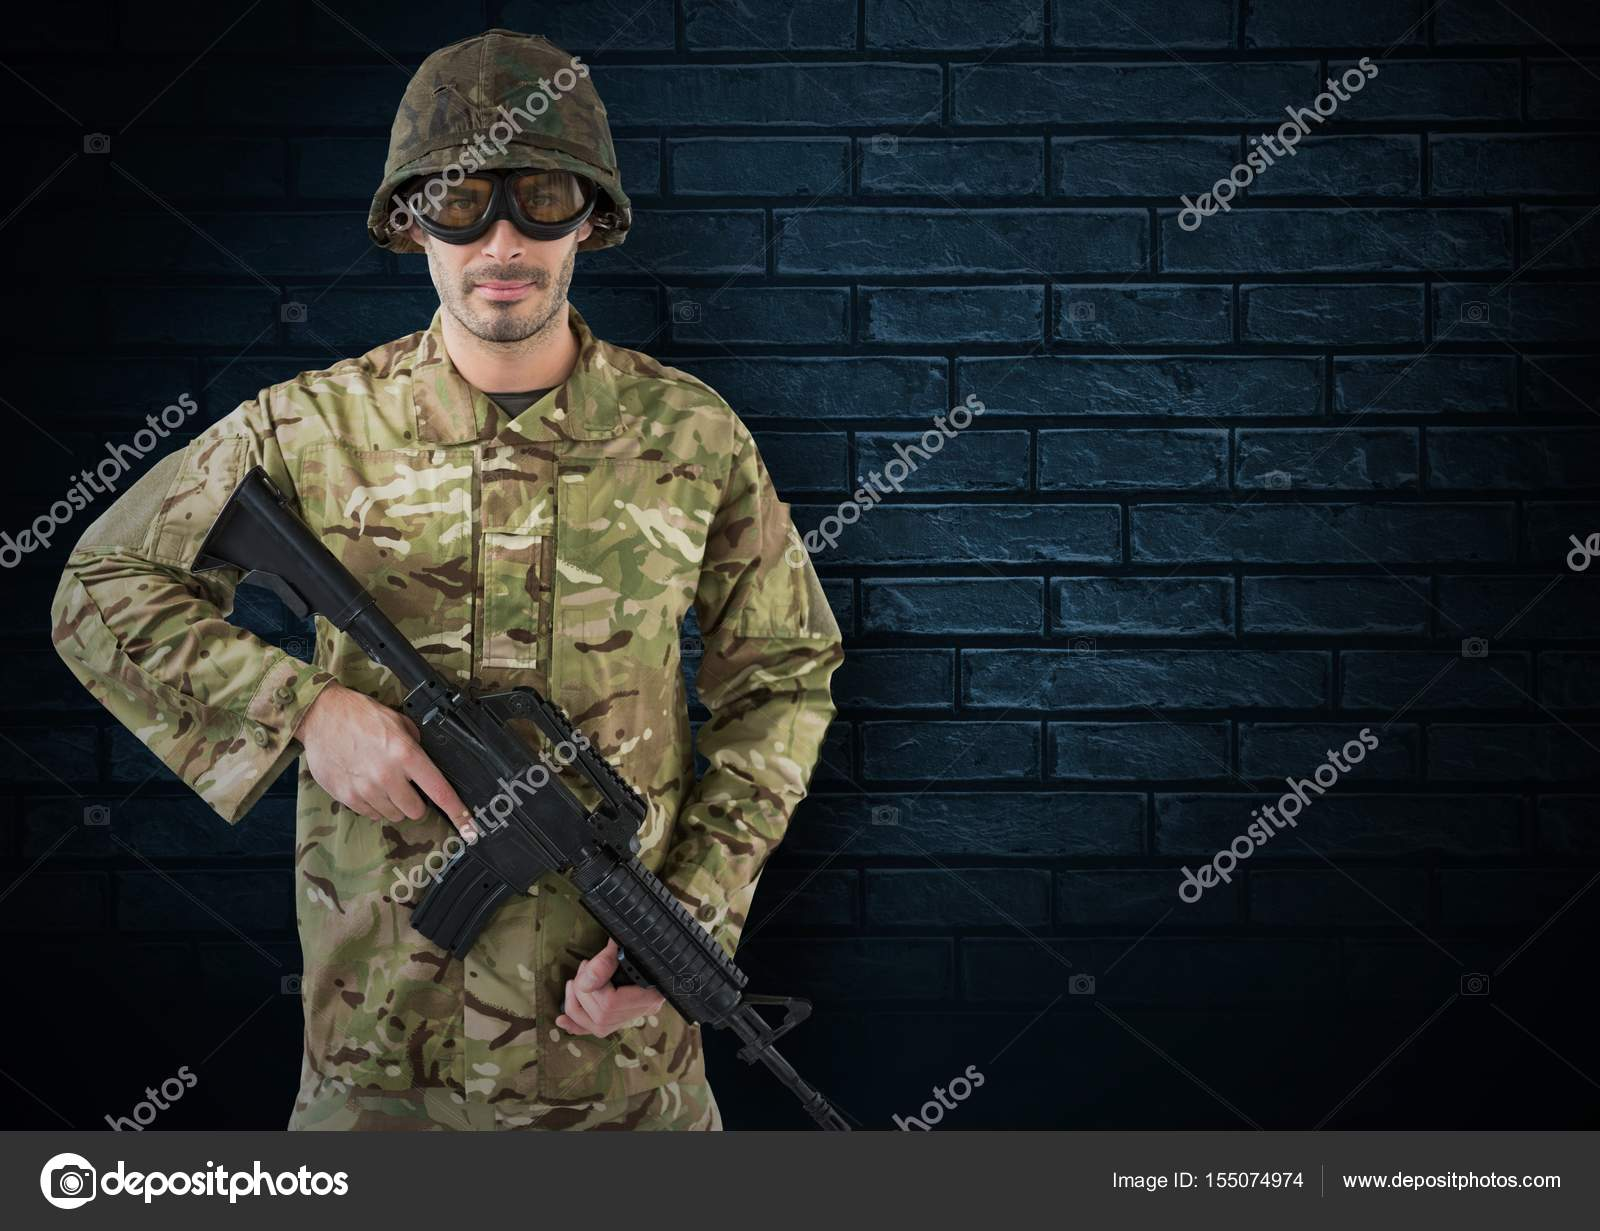 Digital Composite Of Soldier With Helmet Glasses And Weapon Dark Bricks Background Photo By Vectorfusionart